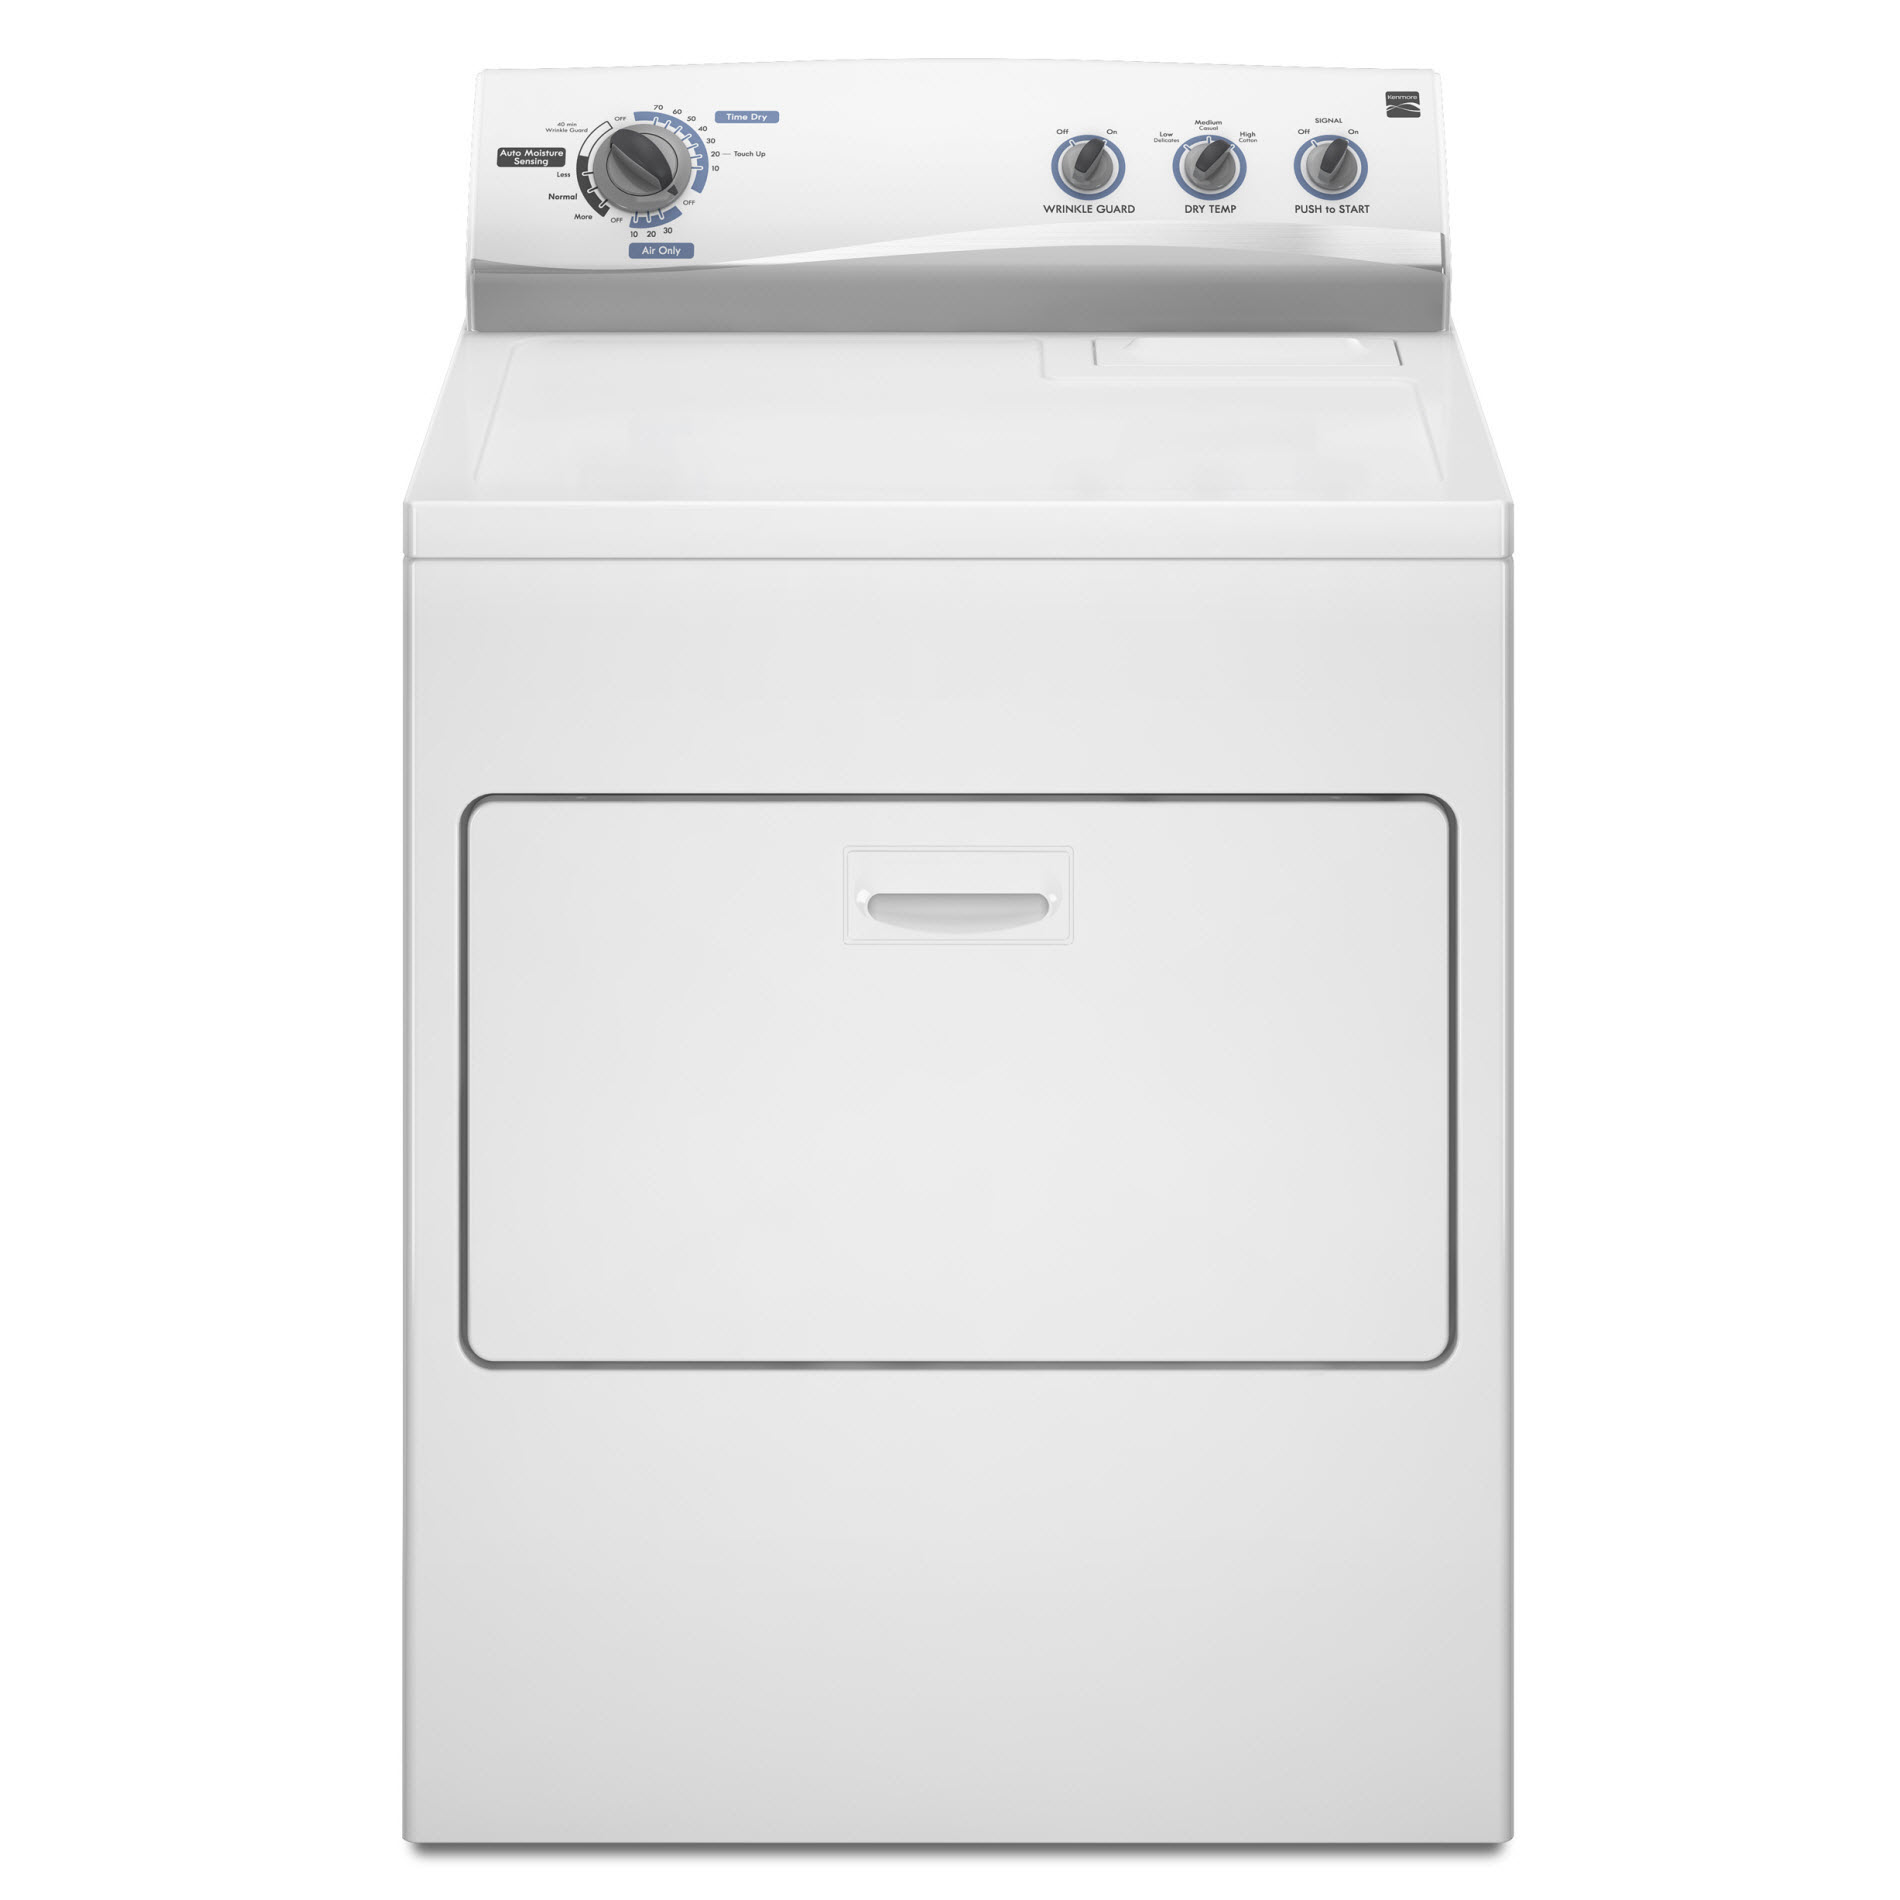 Kenmore 7.0 cu. ft. Electric Dryer - White                                                                                               Kenmore 7.0 cu. ft. Gas Dryer - White